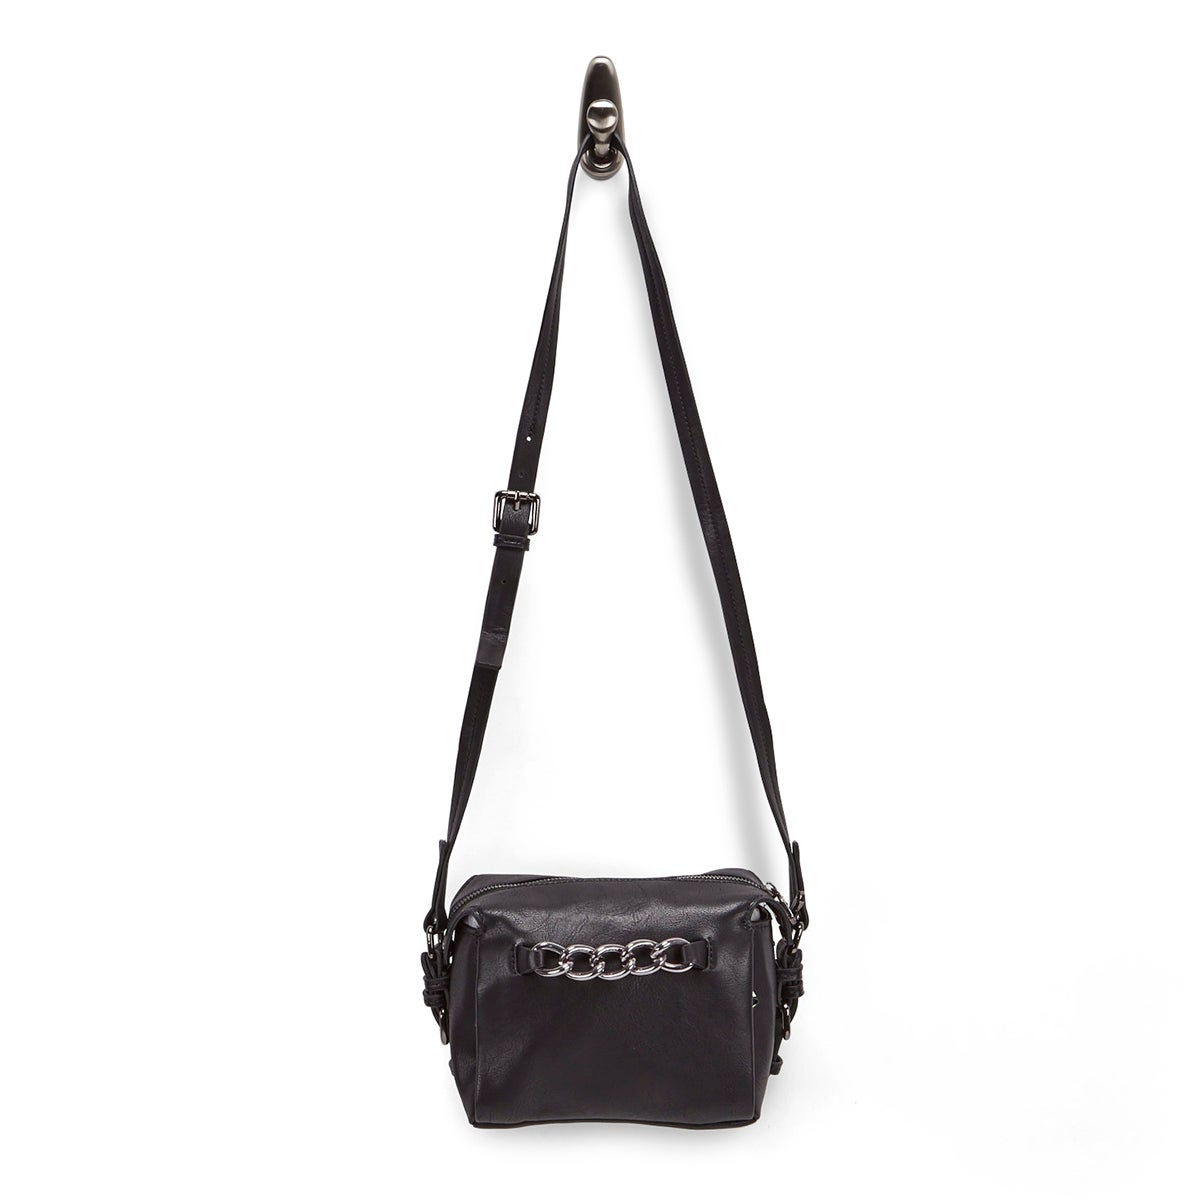 Lds Summer Chain black cross body